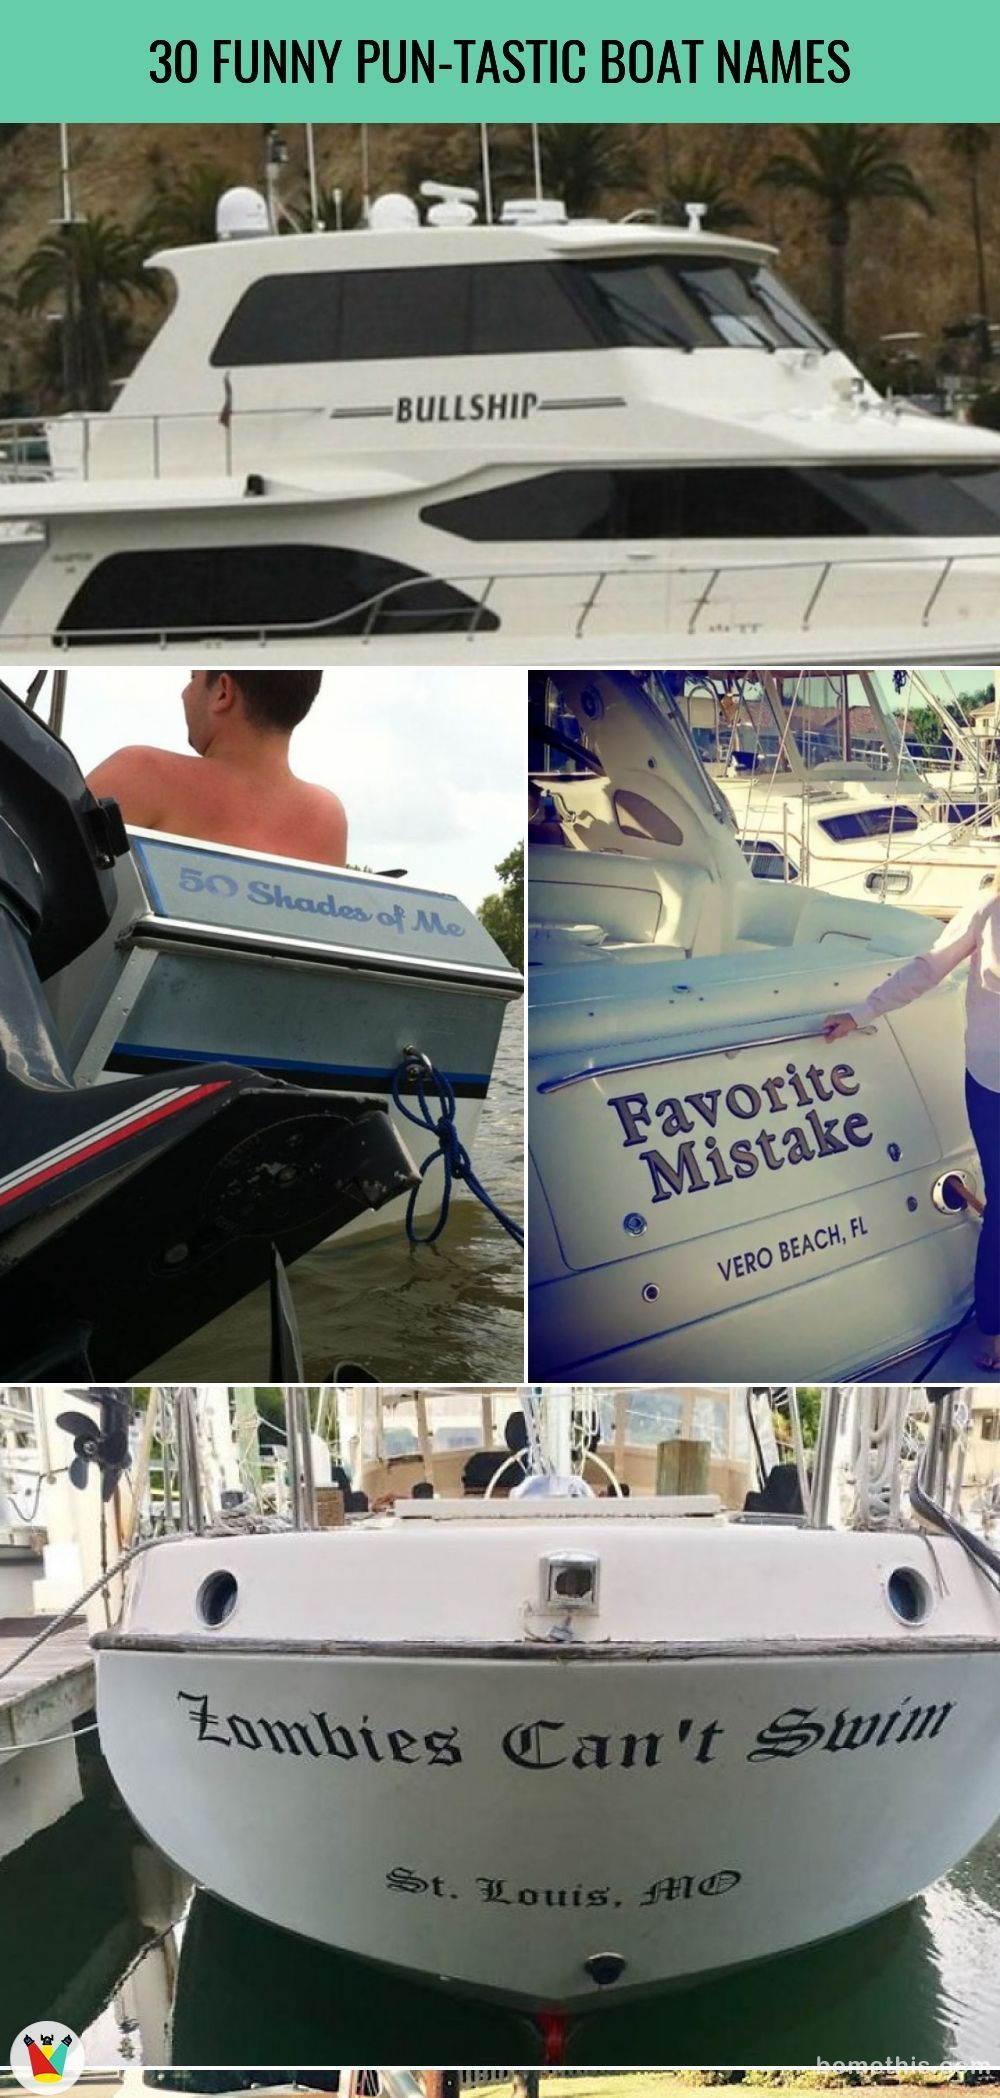 30 Pun-tastic Boat Names That Will Make The Whole Harbour